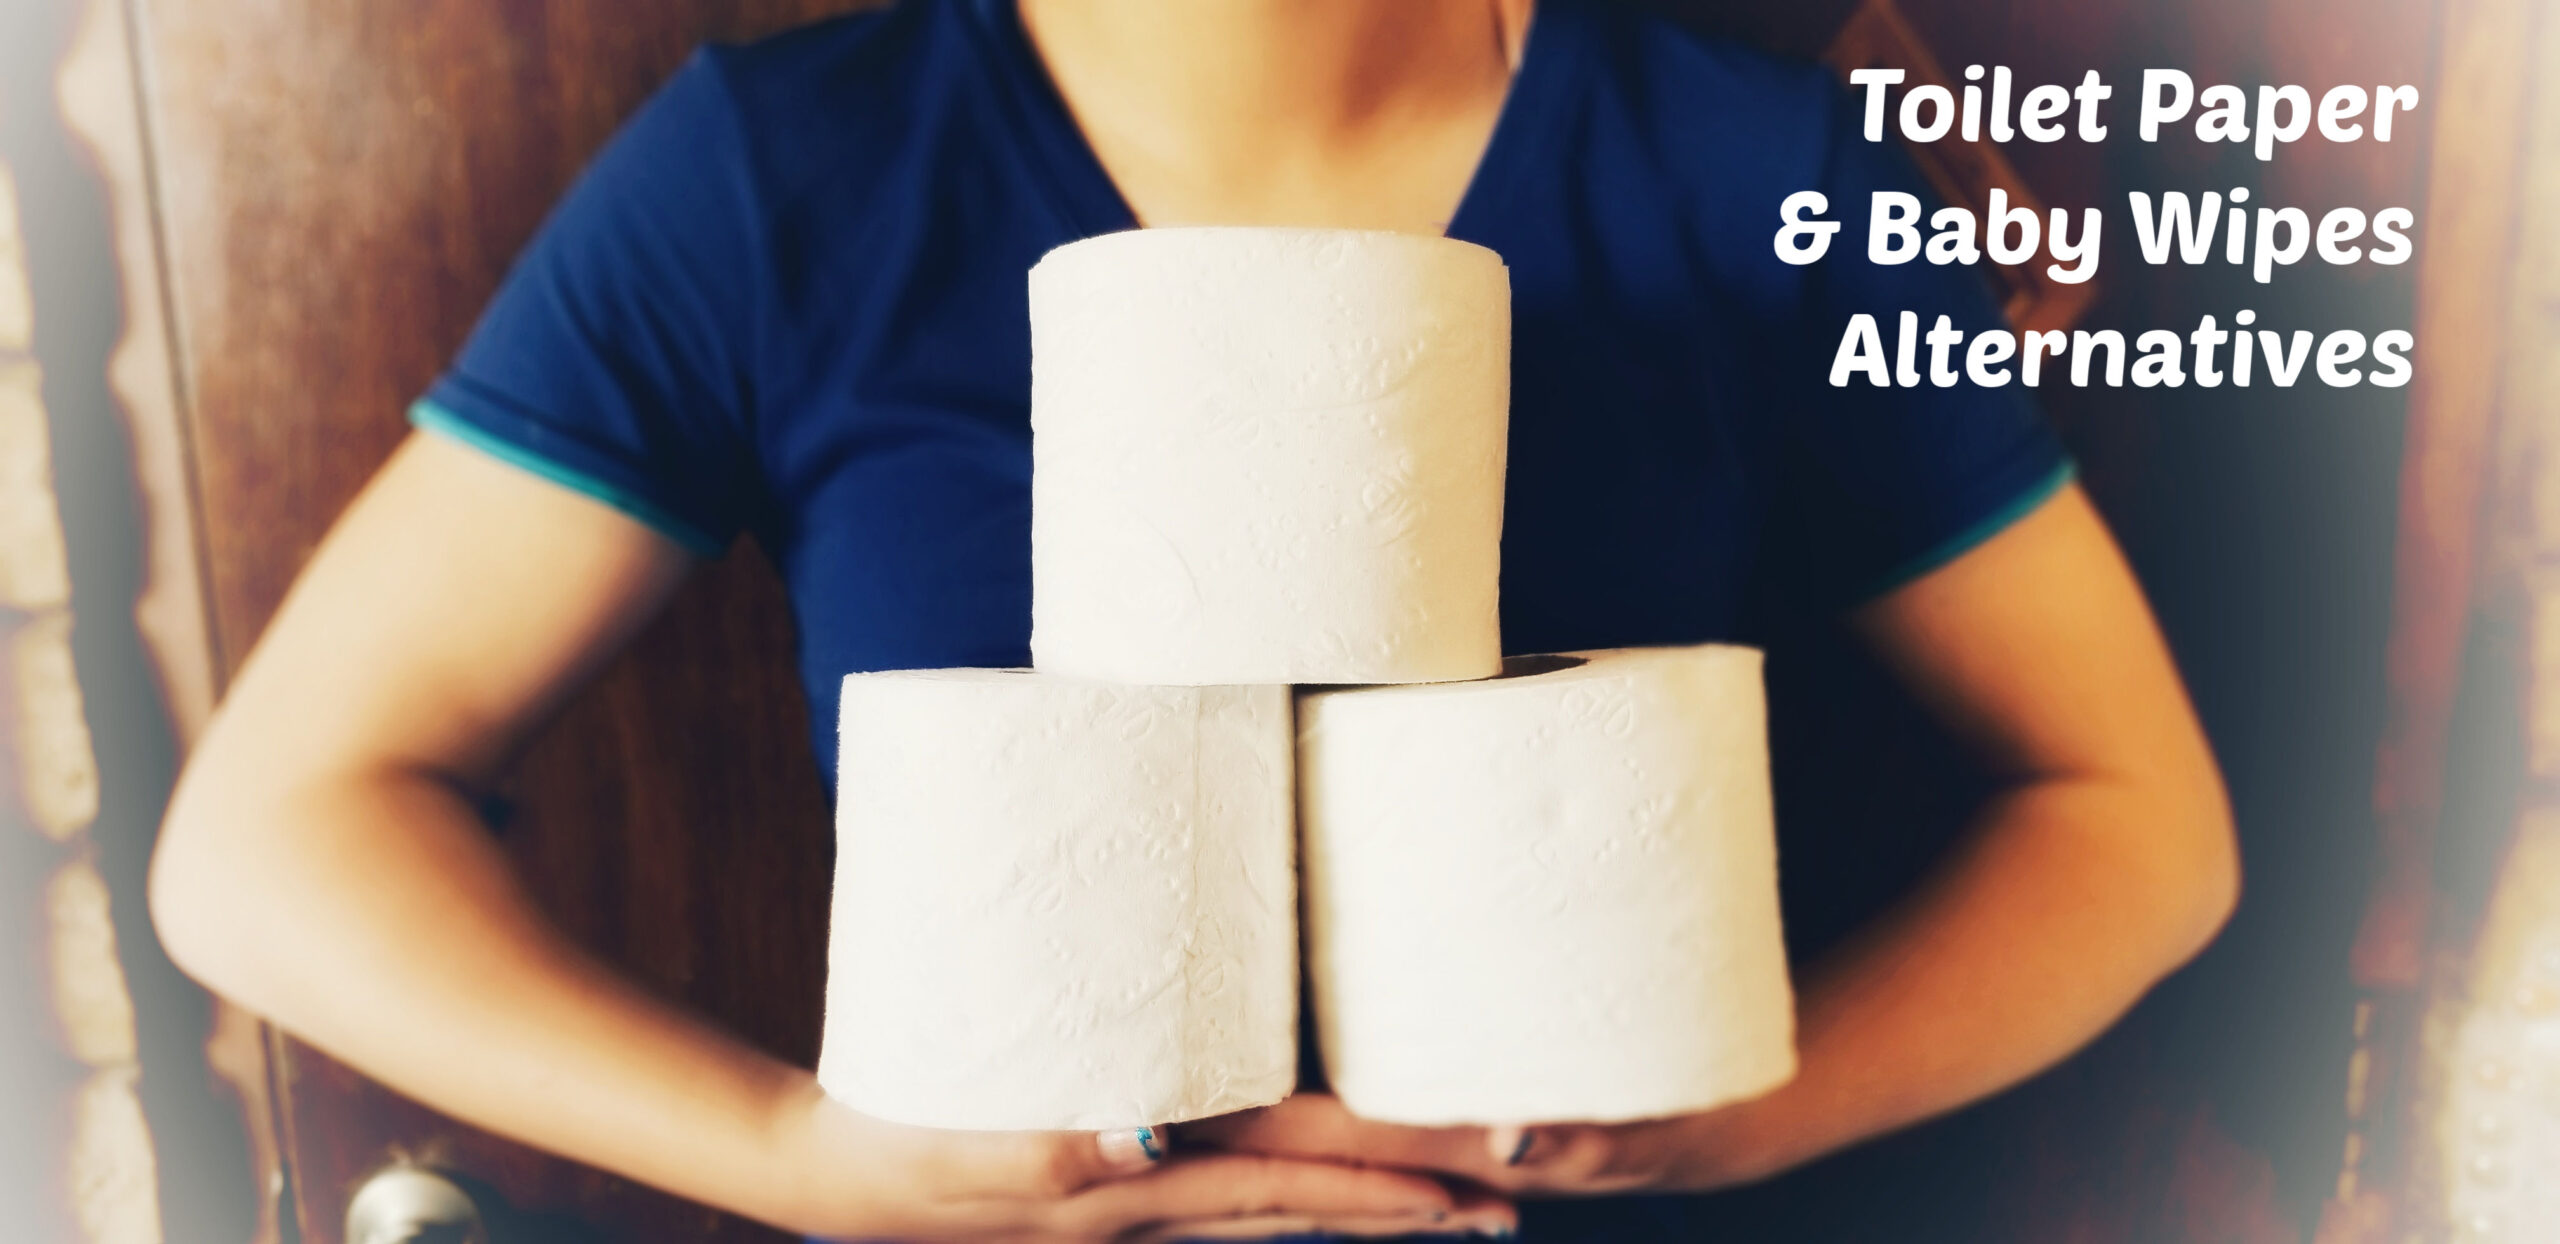 Toilet Paper and Baby Wipes Alternatives